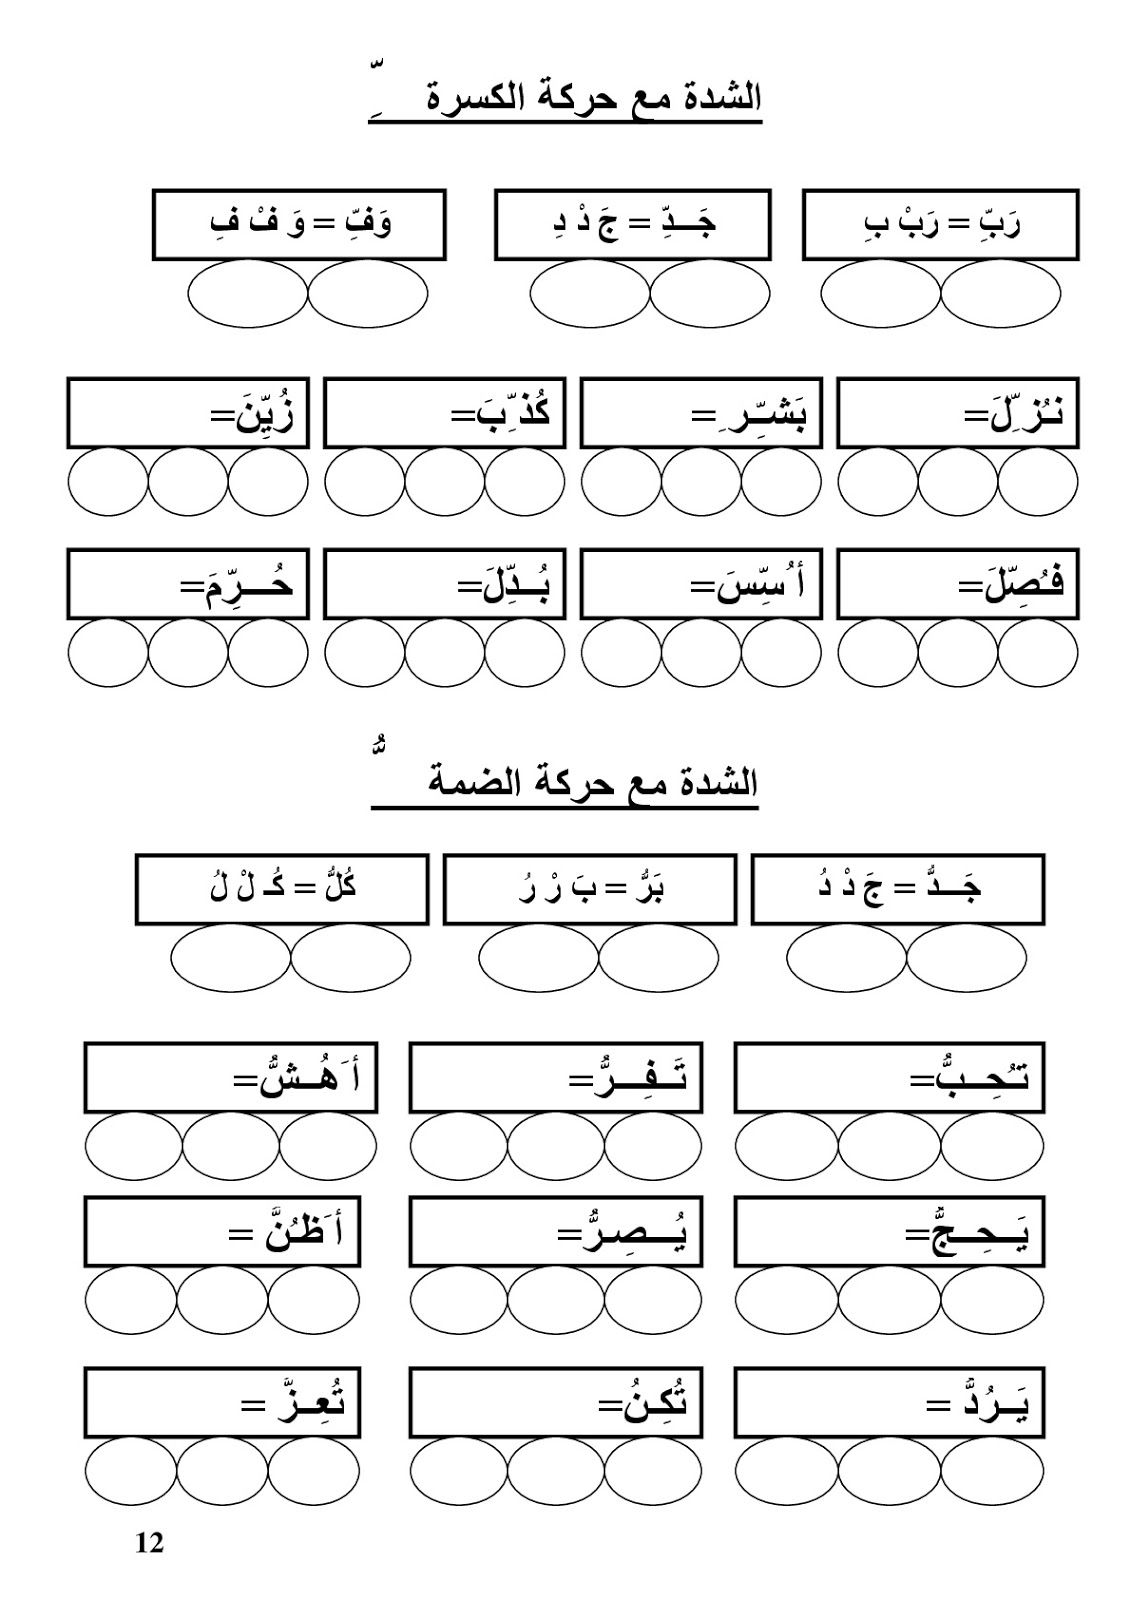 Pin By Zooozo On Arabic Worksheets In